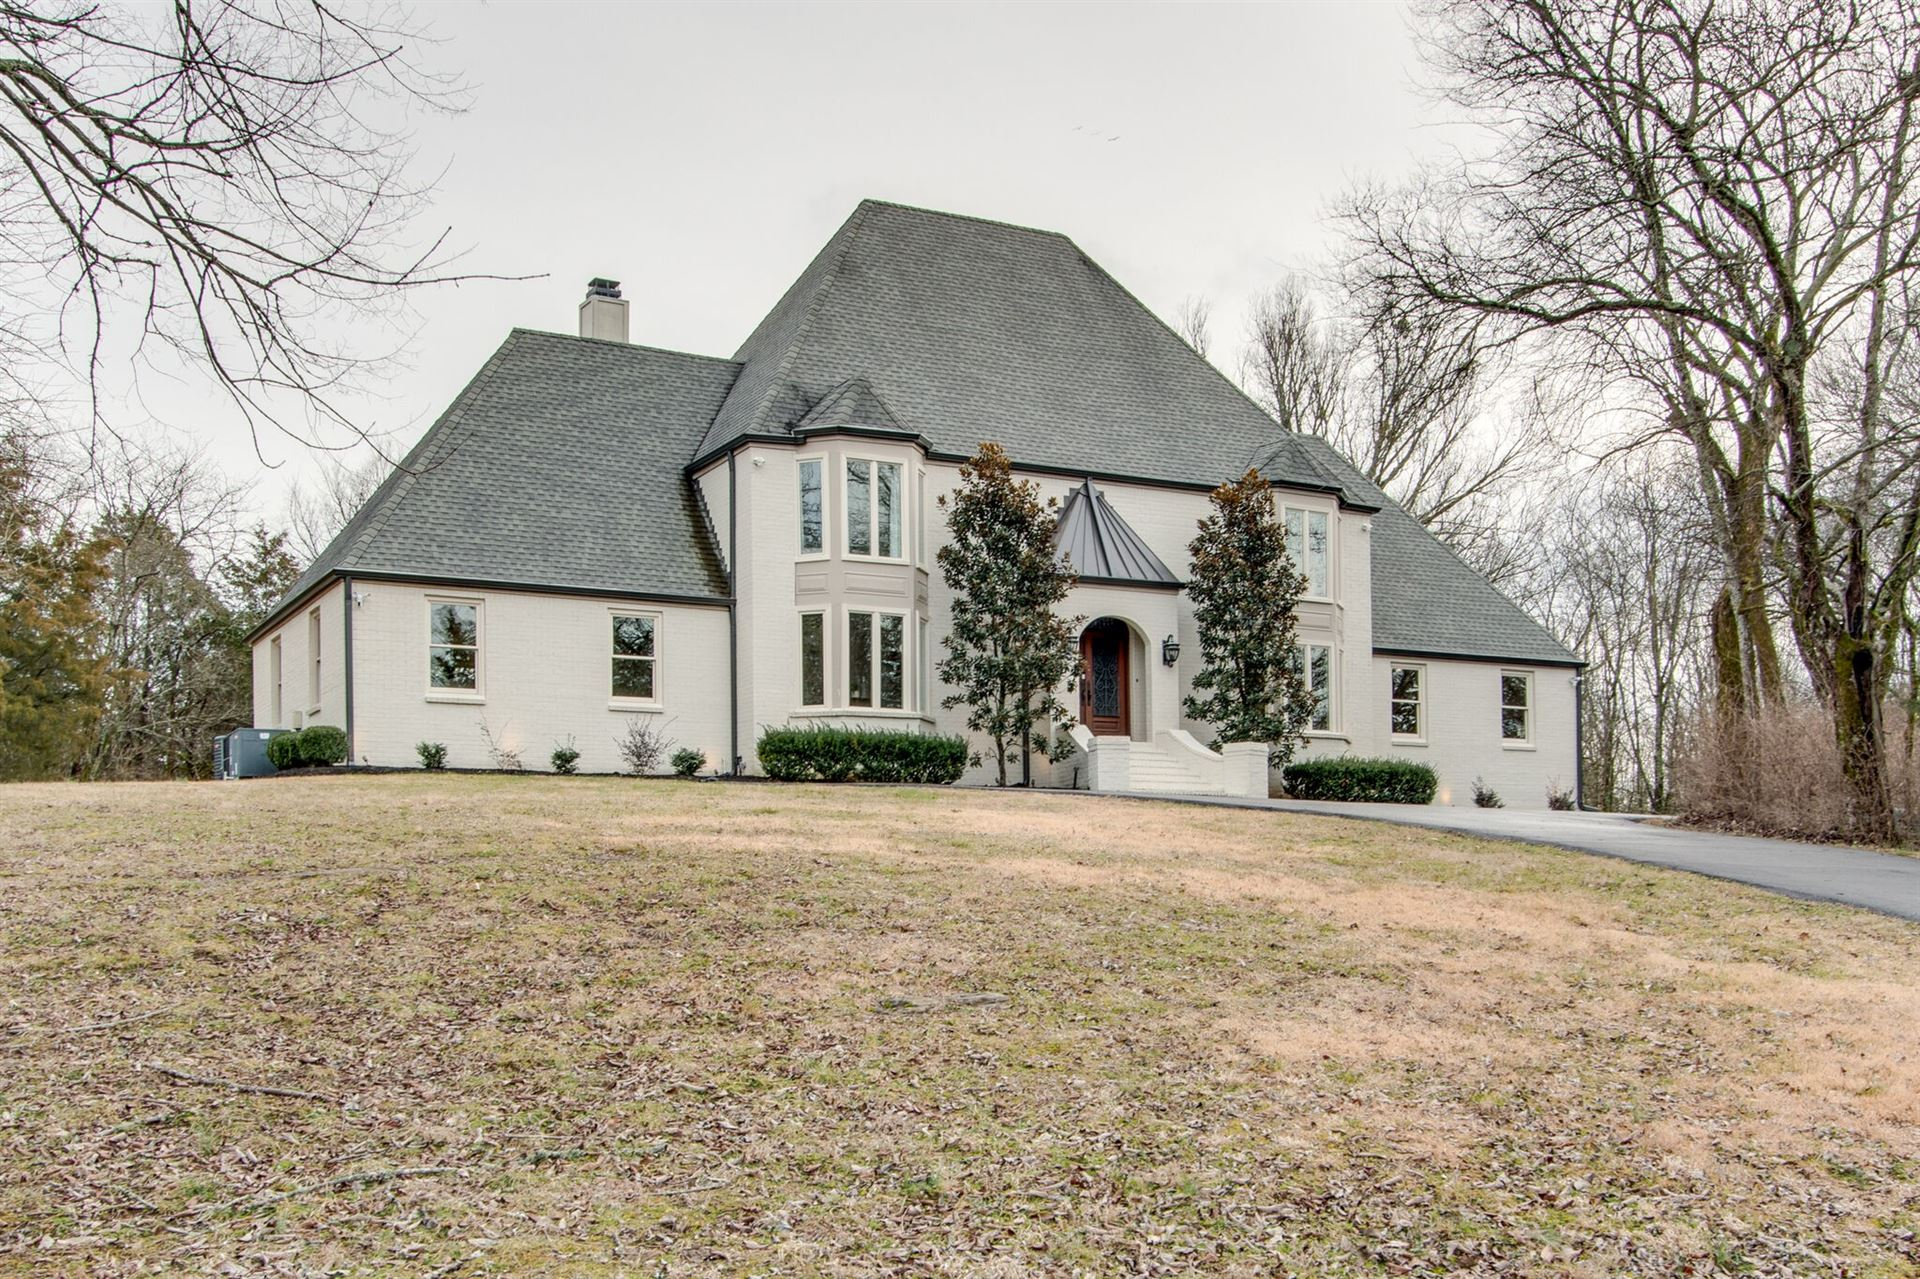 1105 Natchez Rd, Franklin, TN 37069 - MLS#: 2221094